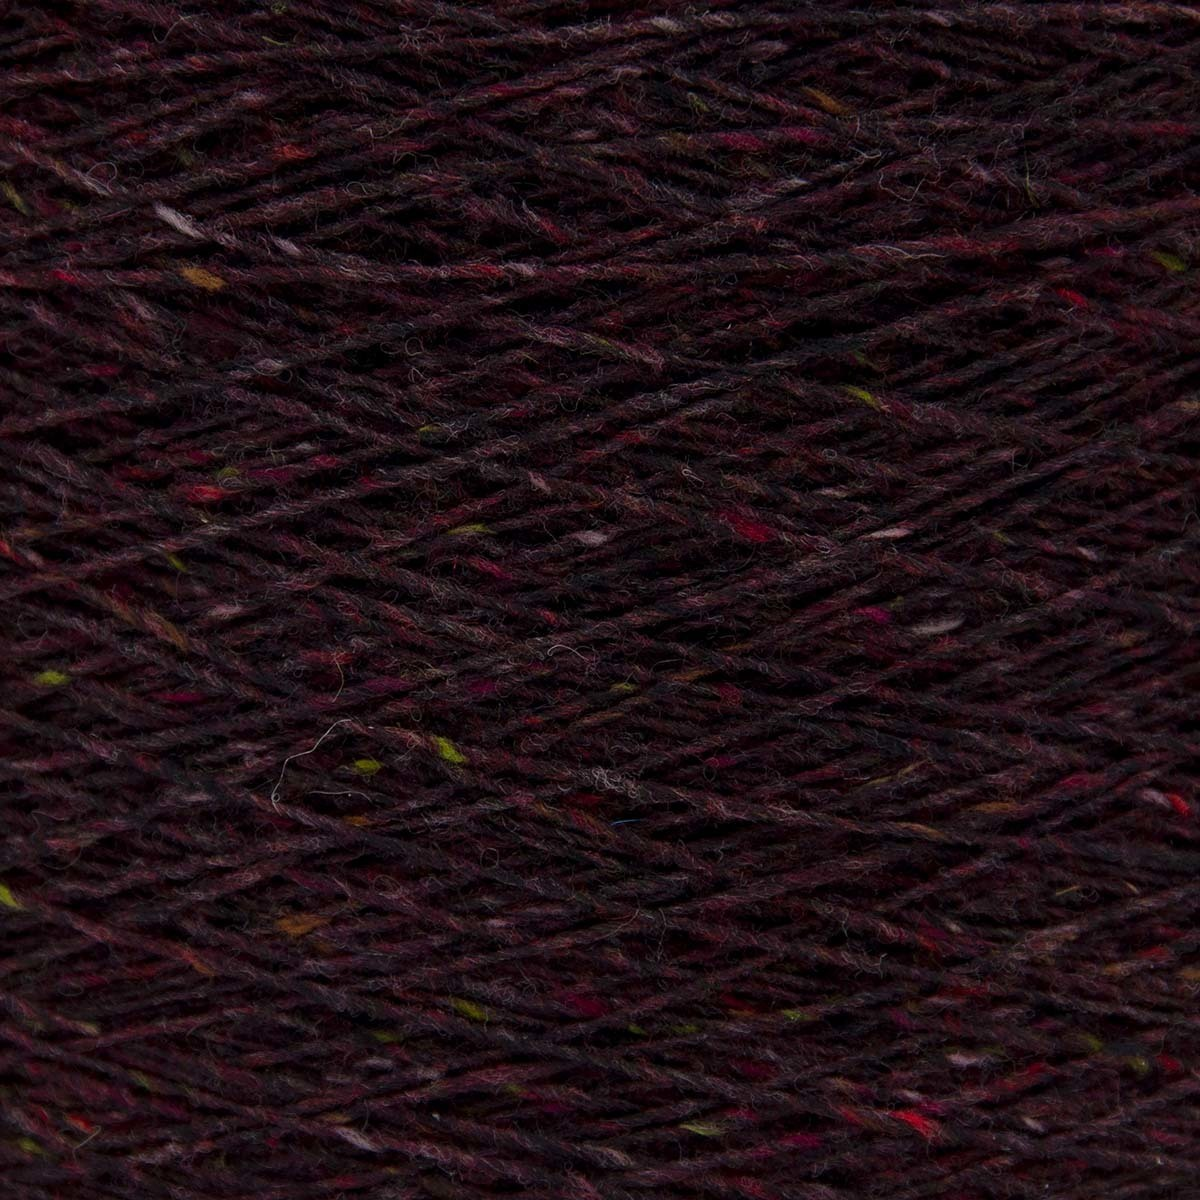 Knoll Yarns Soft Donegal (одинарный твид) - 5516